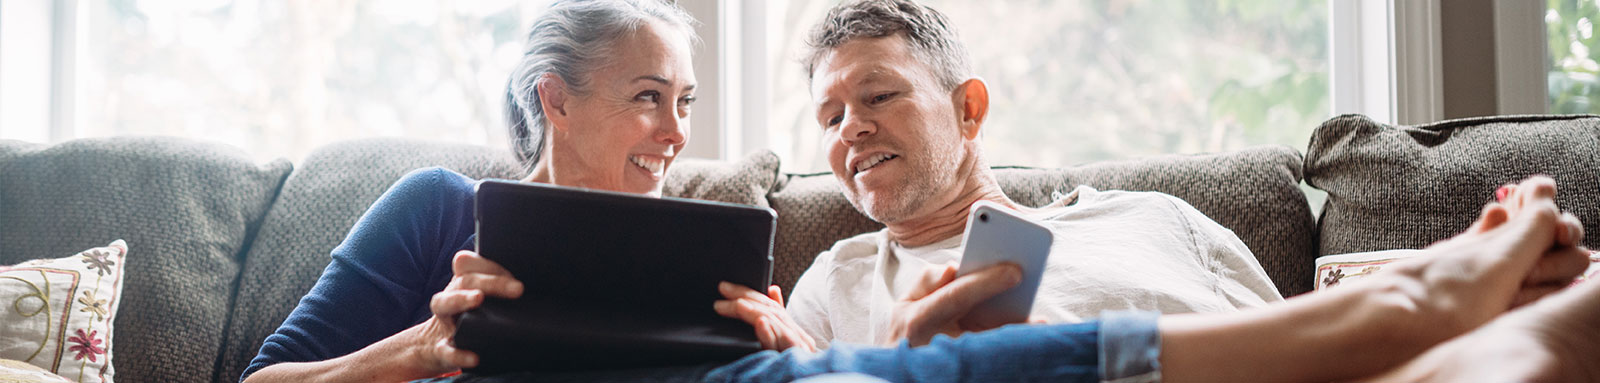 Two people sitting on couch using mobile phones